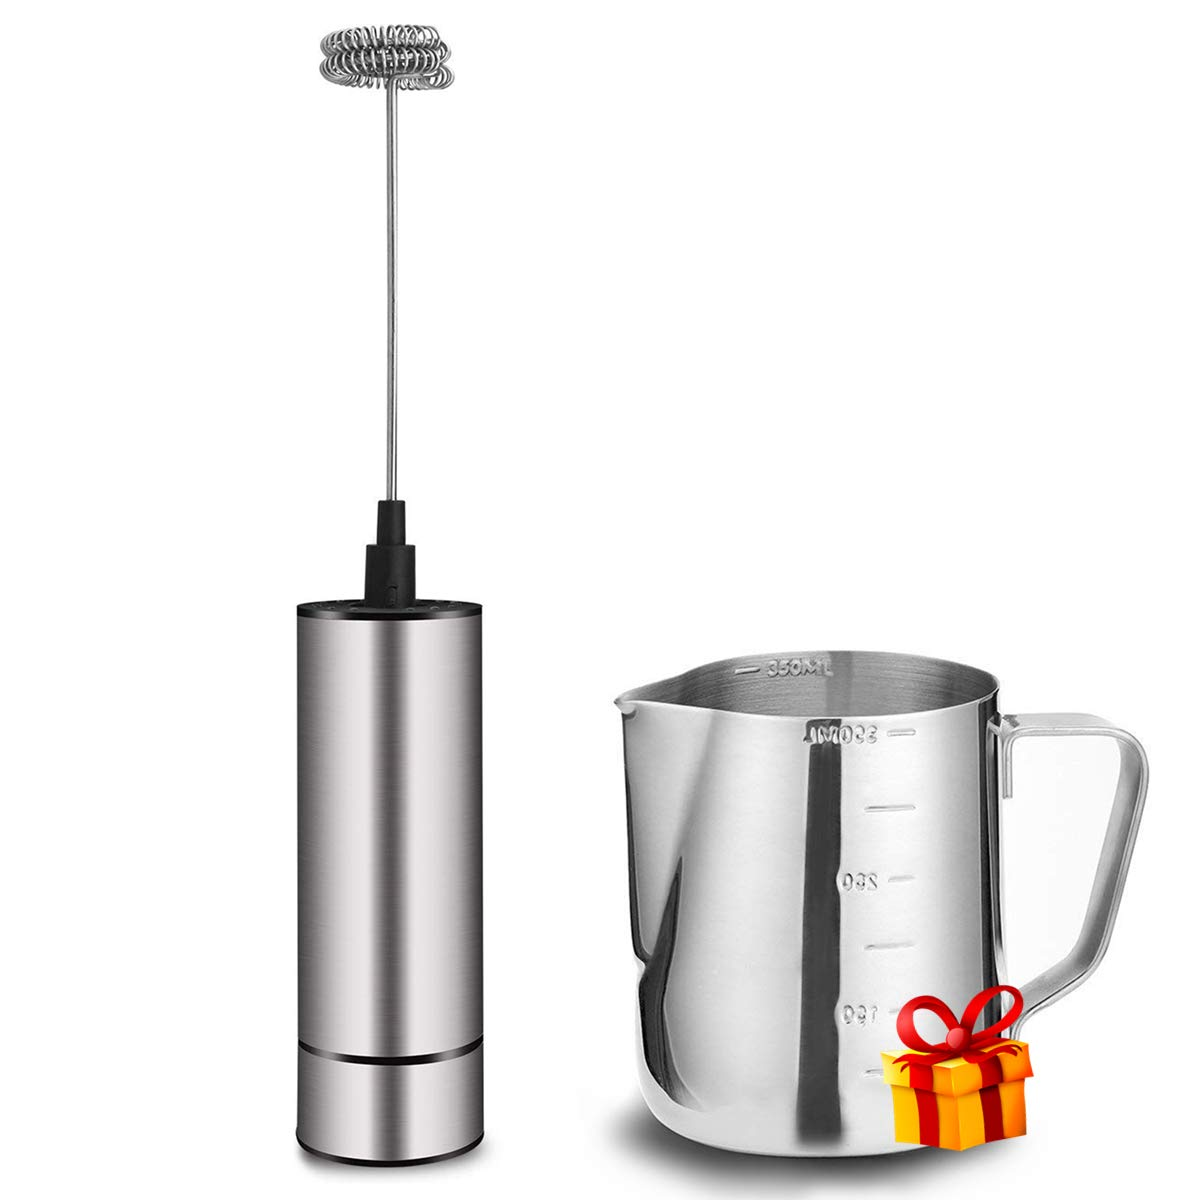 BASECENT Milk Frother Handheld Electric, Coffee Frother for Milk Foaming